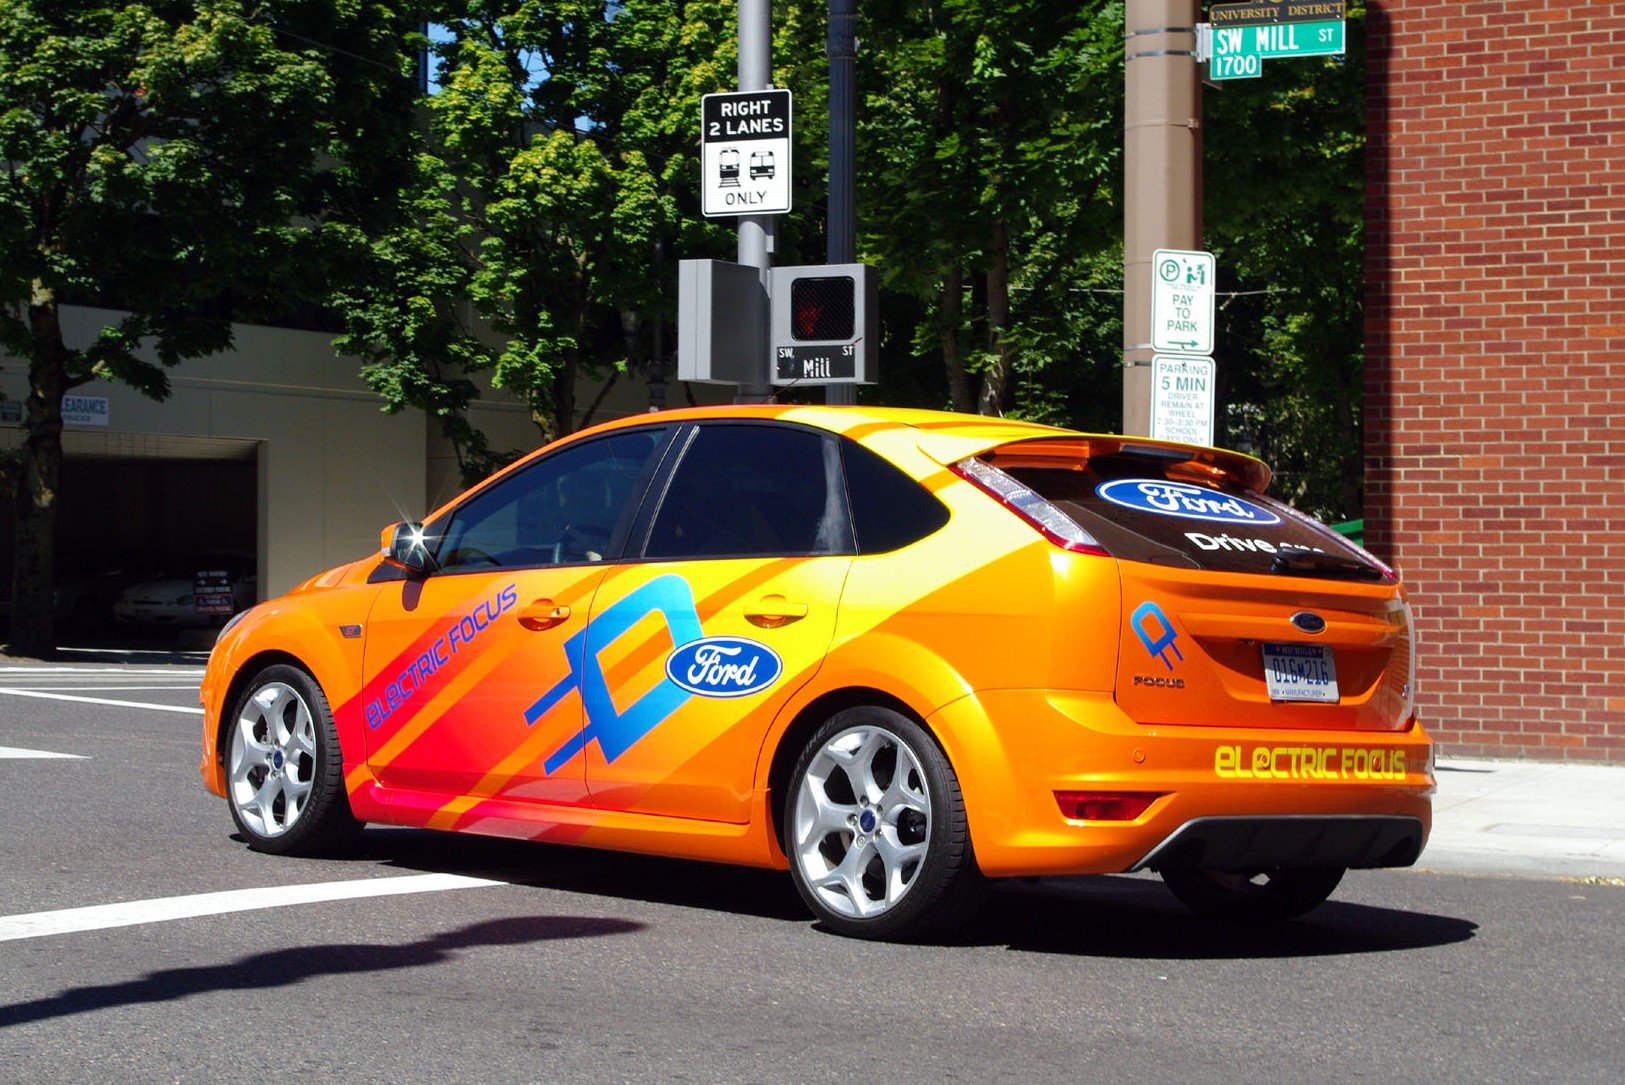 Ford Embracing Utilities to Boost Electric Car Network